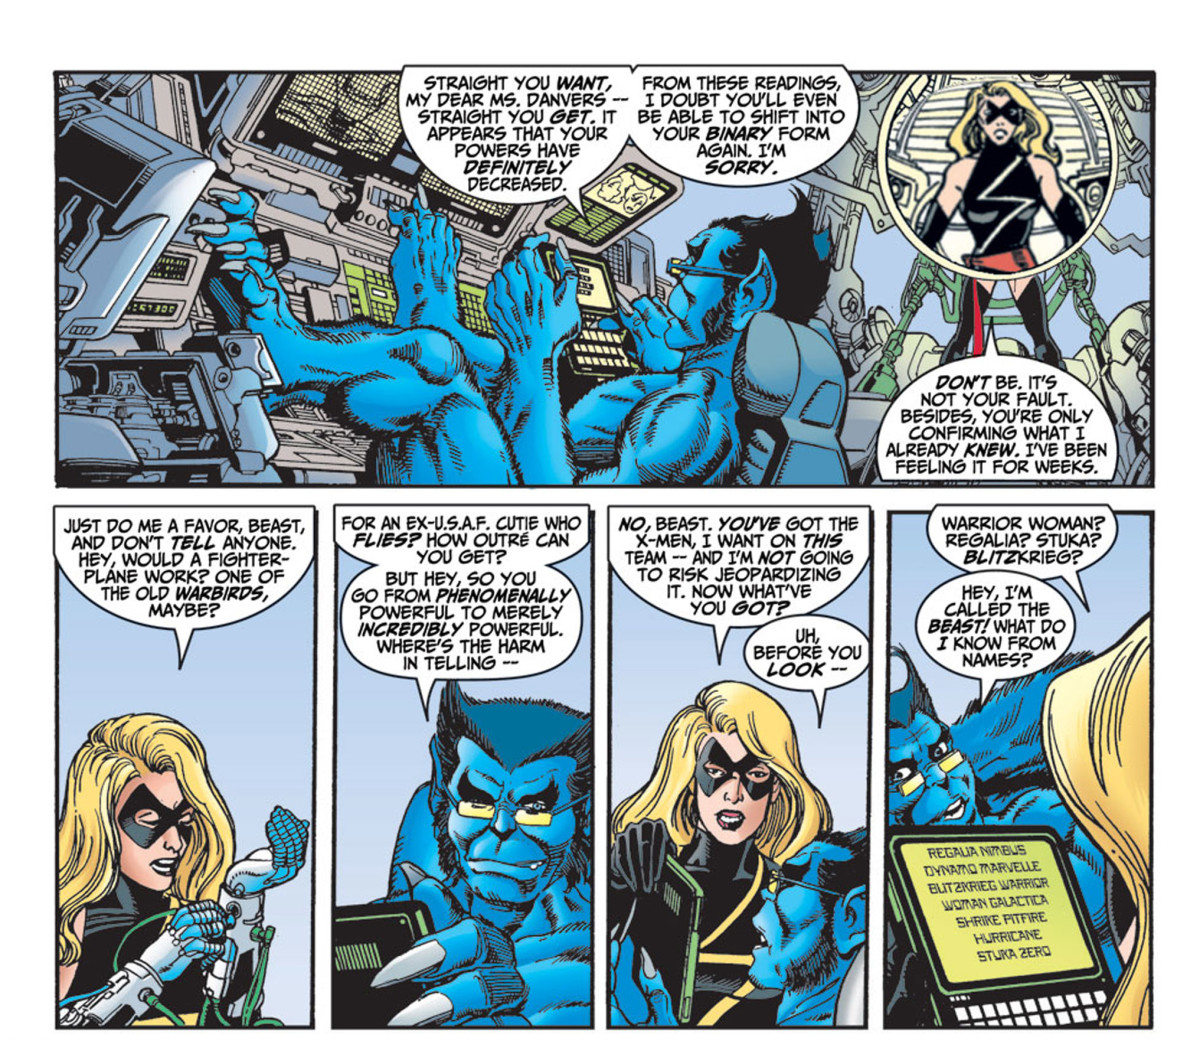 Beast confirms that Carol Danvers' powers have been reduced and that she can no longer manifest into her Binary form. Thus, a new name is in order. (Panels from Avengers #4 1998).